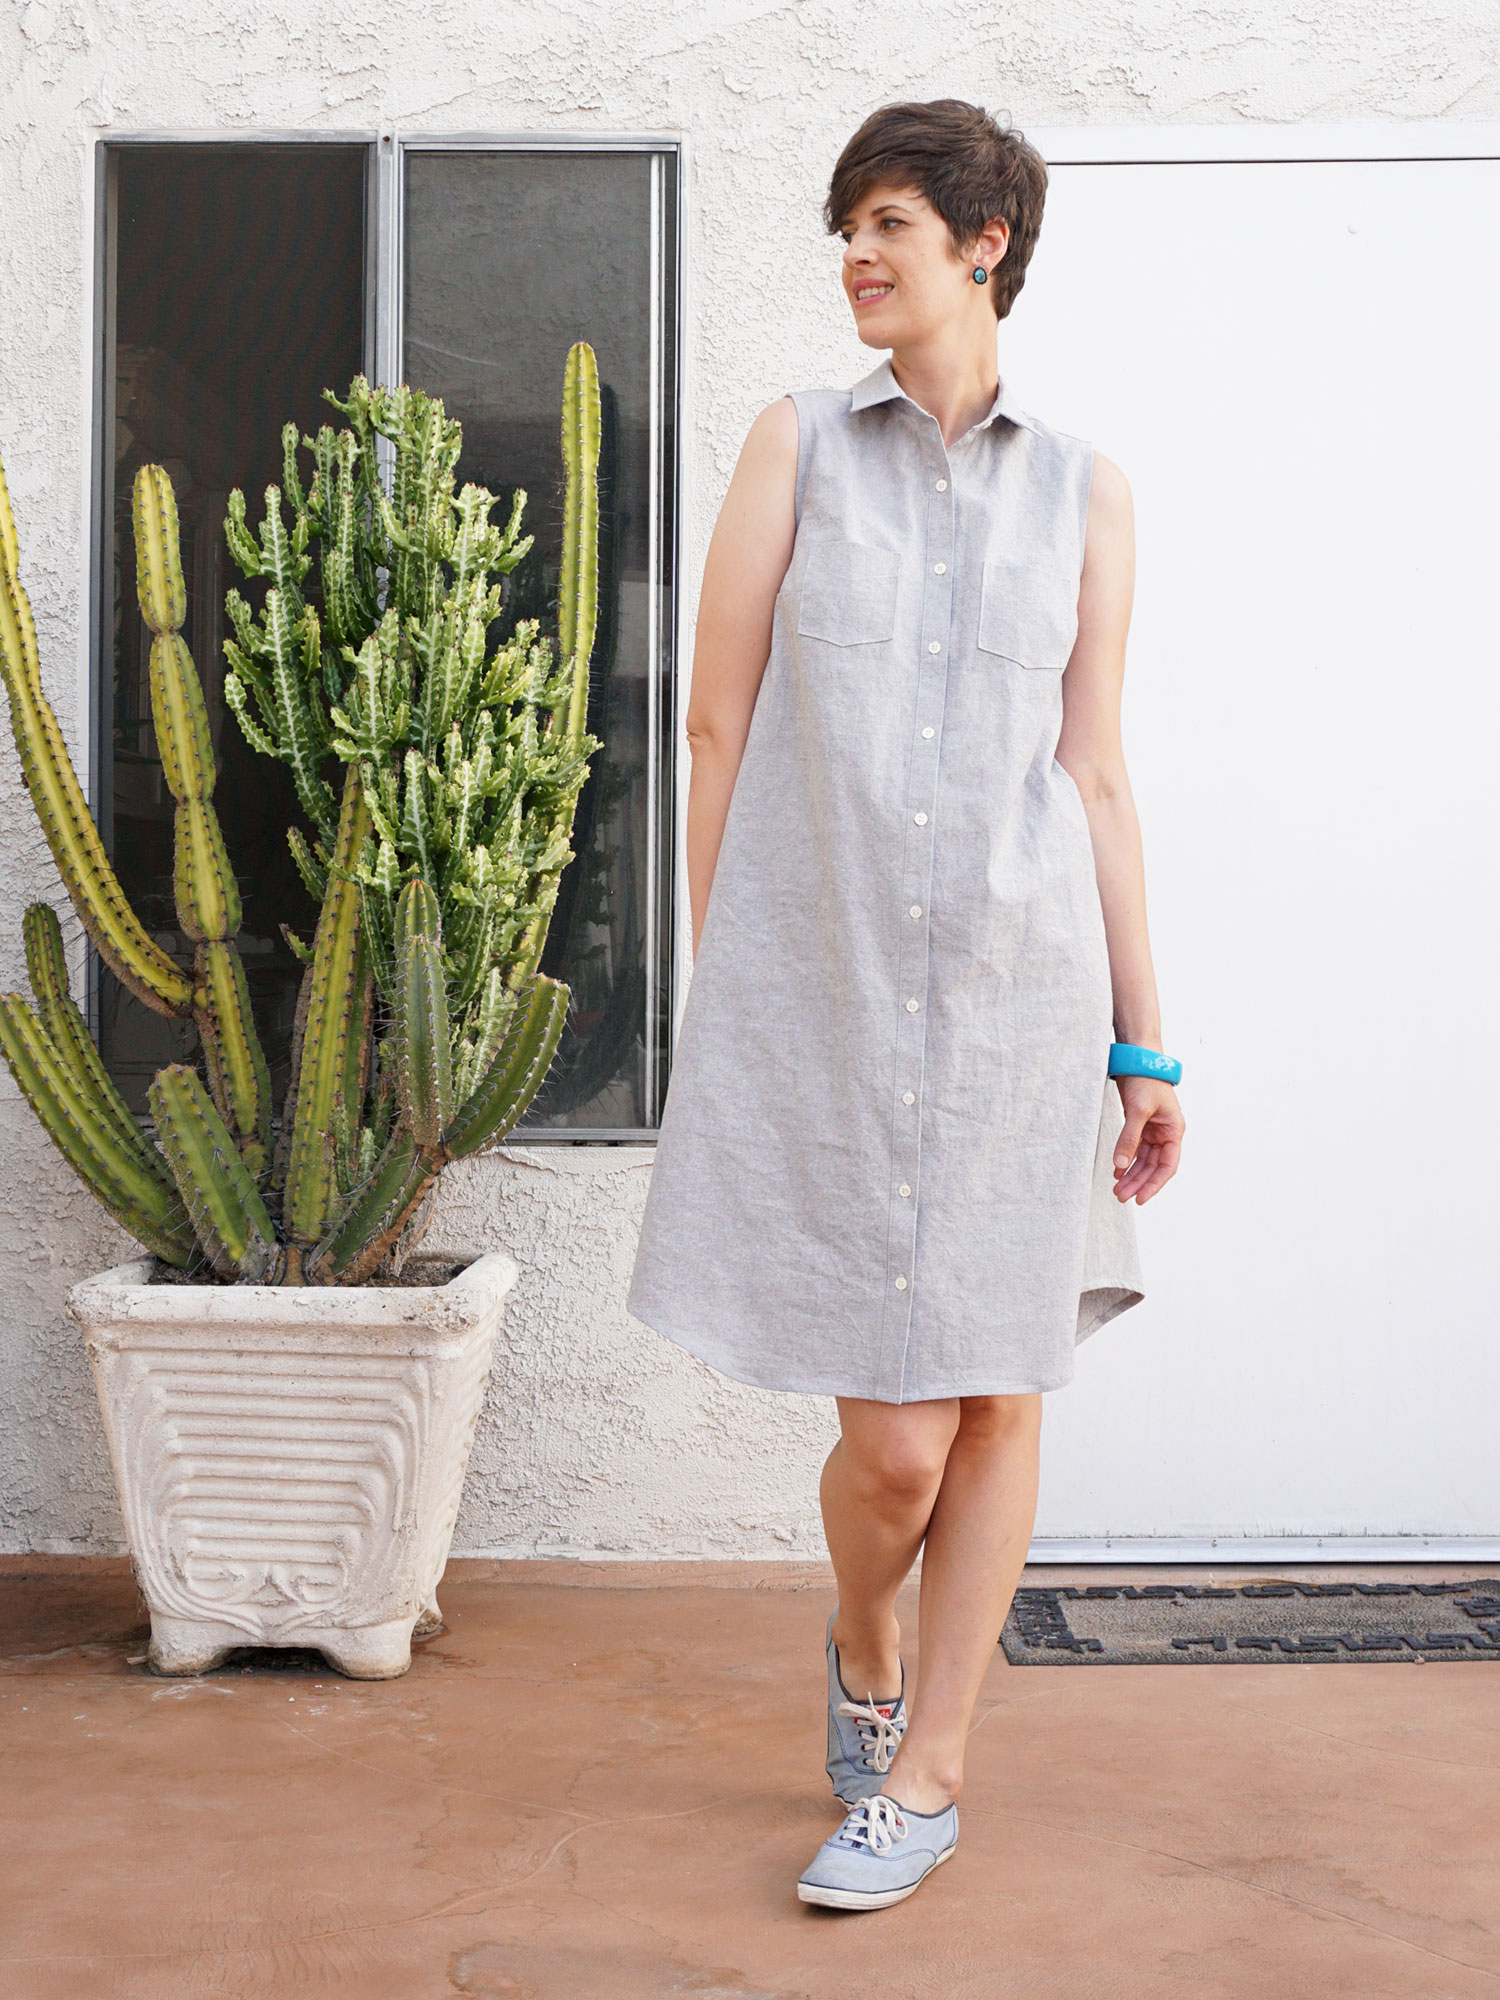 DIY Linen Shirtdress, review of the Alder Shirtdress sewing pattern by Grainline Studio | Sew DIY